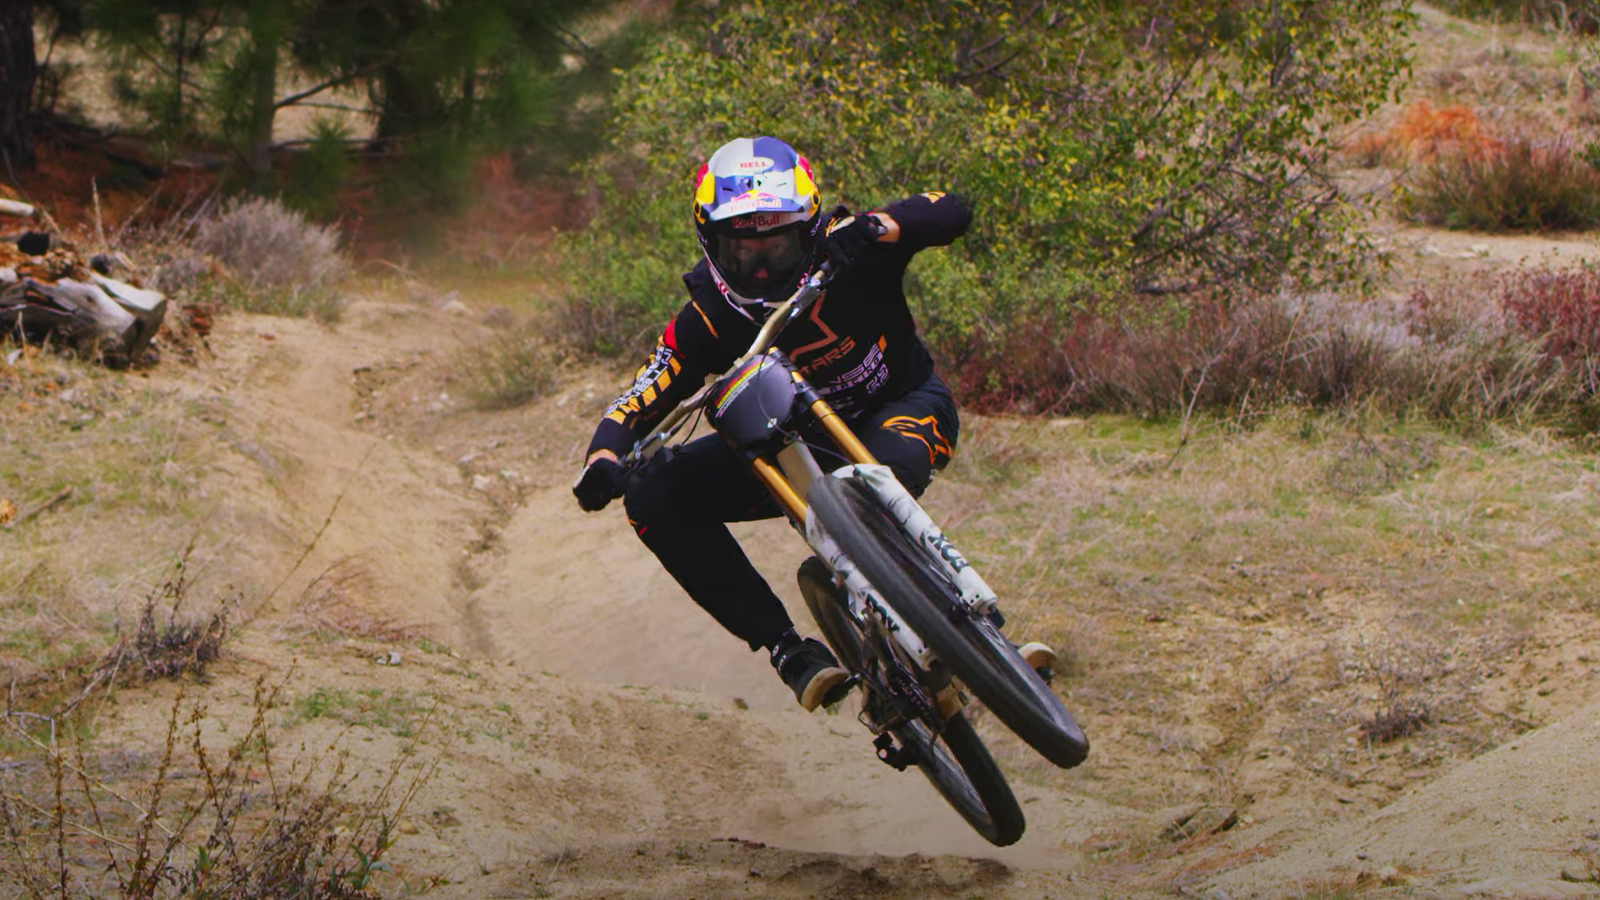 Aaron Gwin's Unquenchable Drive to Win - Timeless, Episode 1